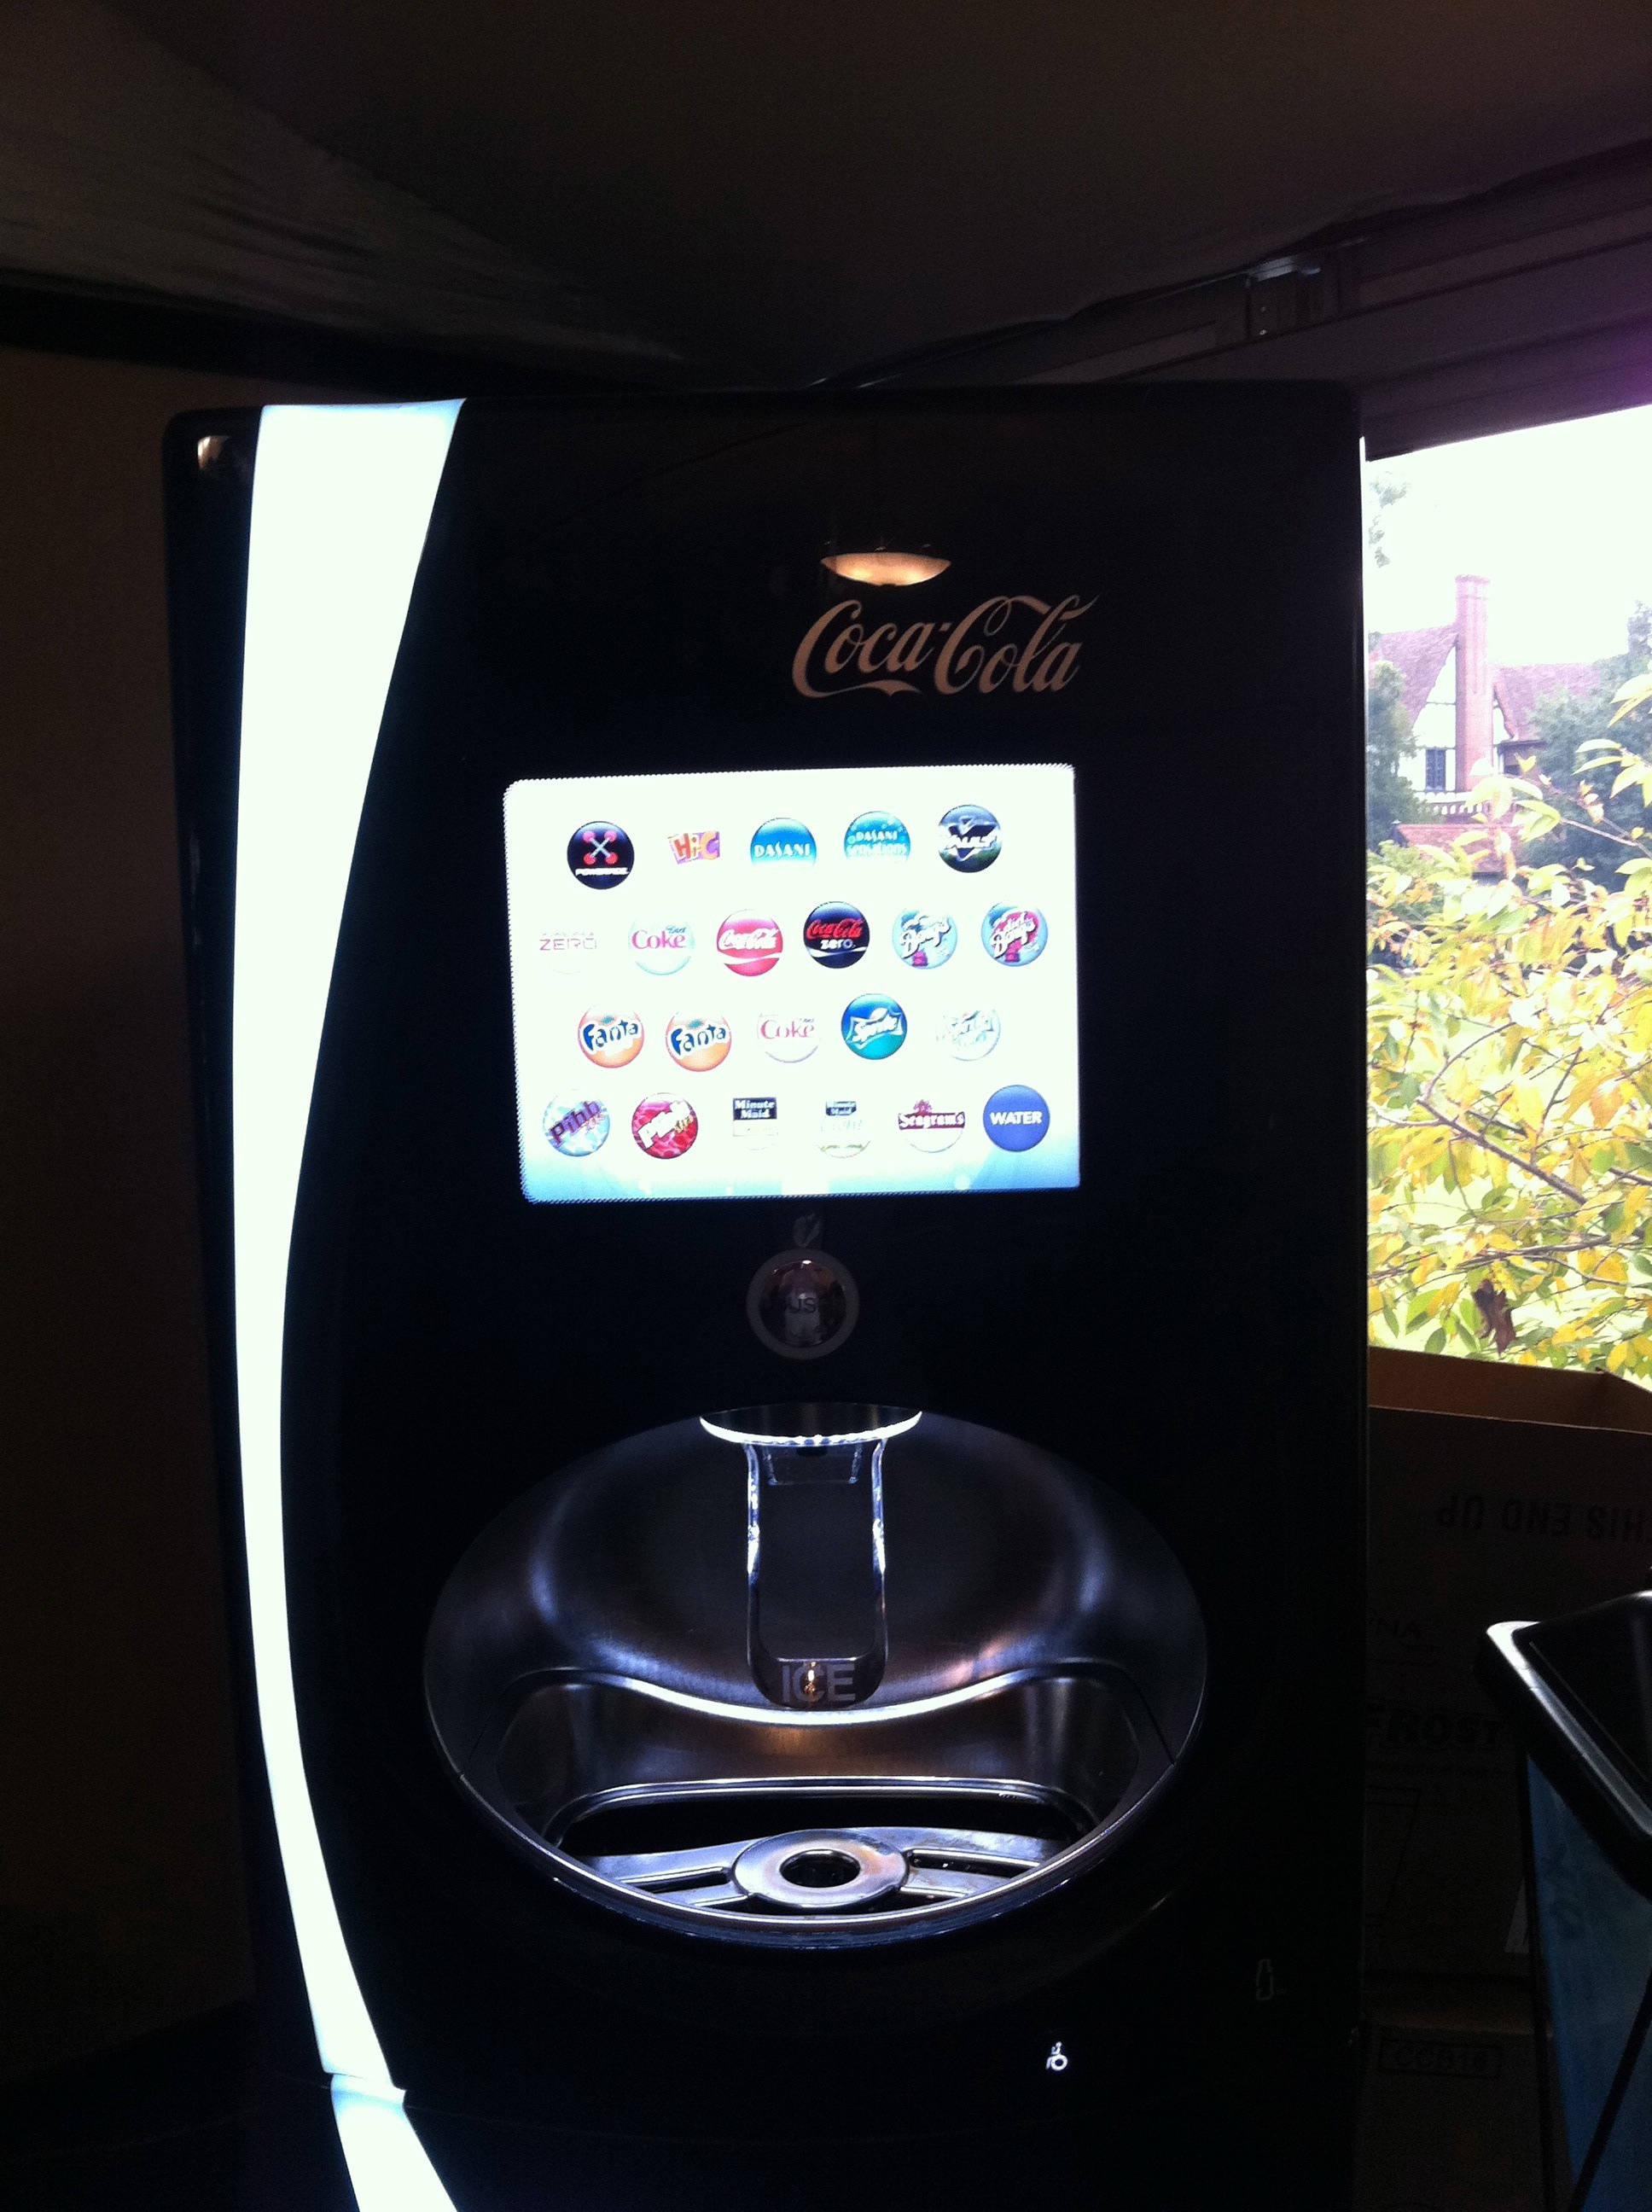 Sadly, this is what has our correspondent most excited at the Tour Championship: the Coca-Cola Freestyle machine in the media center.